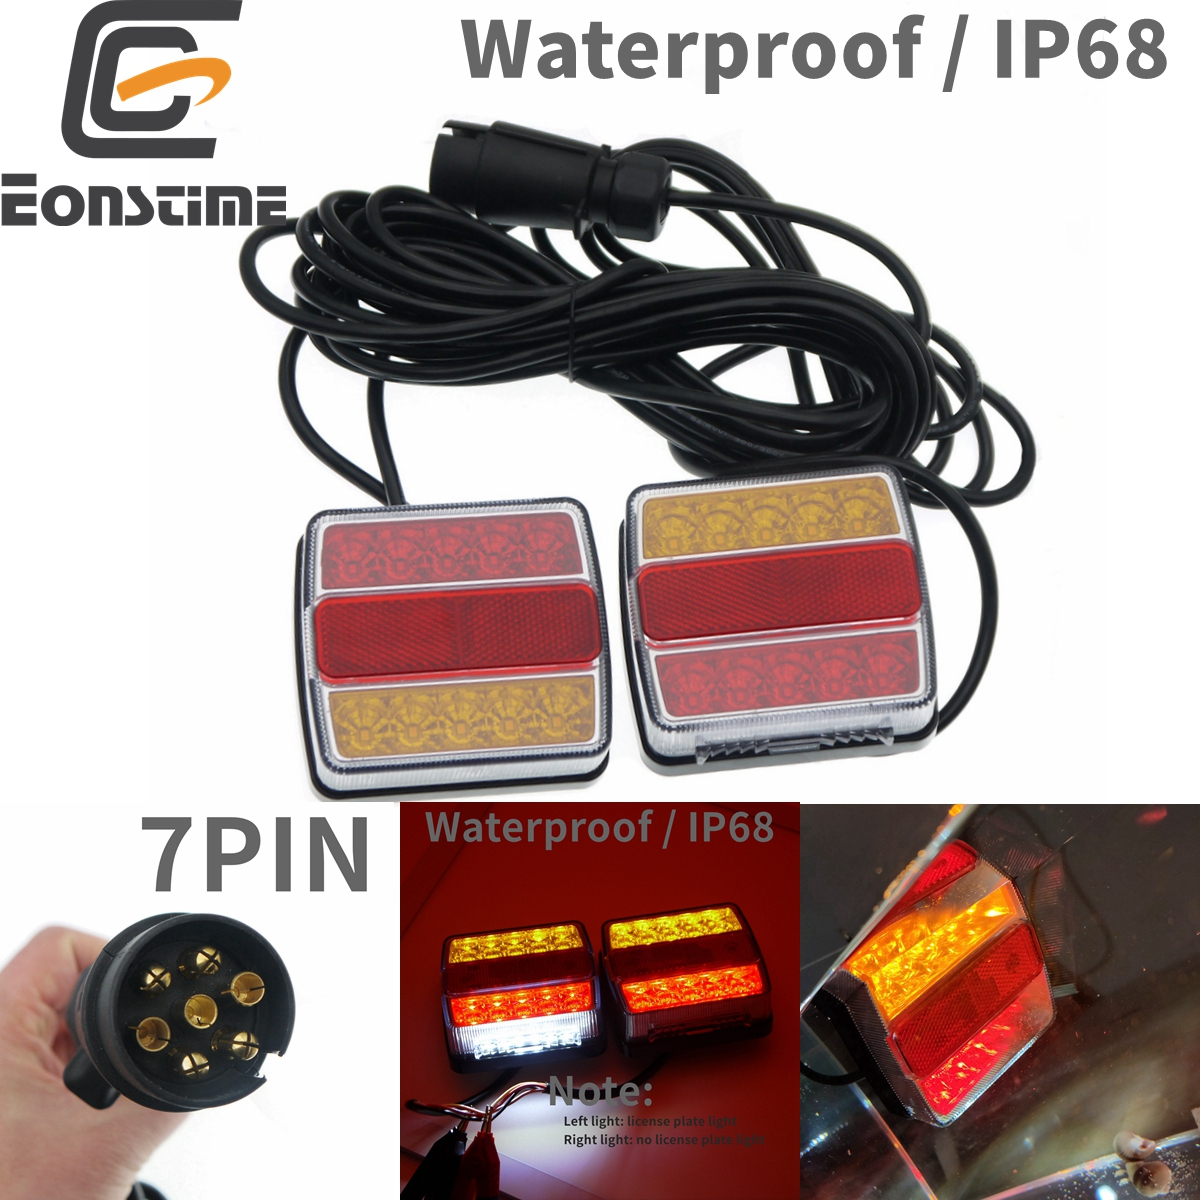 Eonstime 1 Set 12V 10m 10 LED Trailer Light Kit Tail Light Trailer Lights License Plate Light Lamp High Quality Waterproof IP68